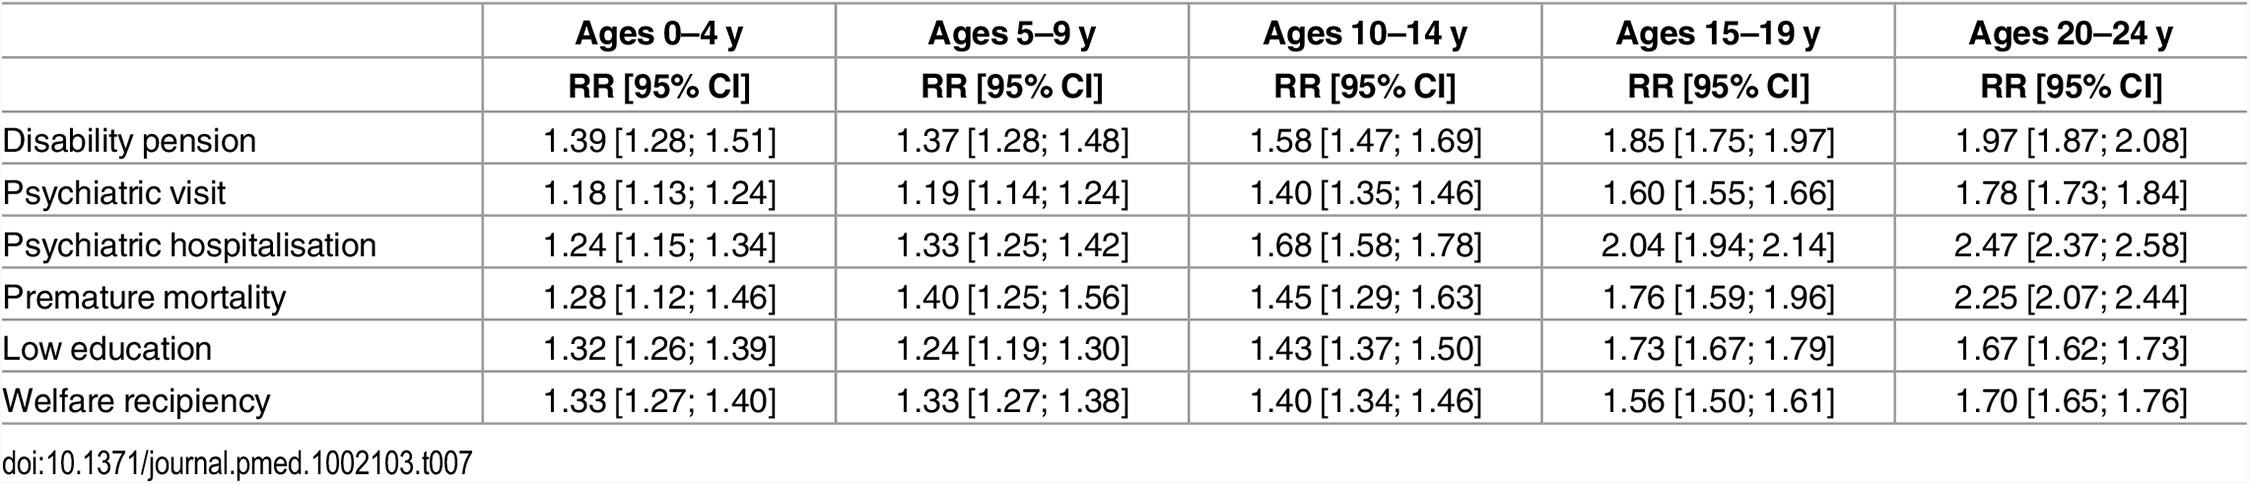 Relative risks (RR) and corresponding 95% confidence intervals (CIs) for the associations between TBI and poor functioning in adulthood, across age-band at first injury.